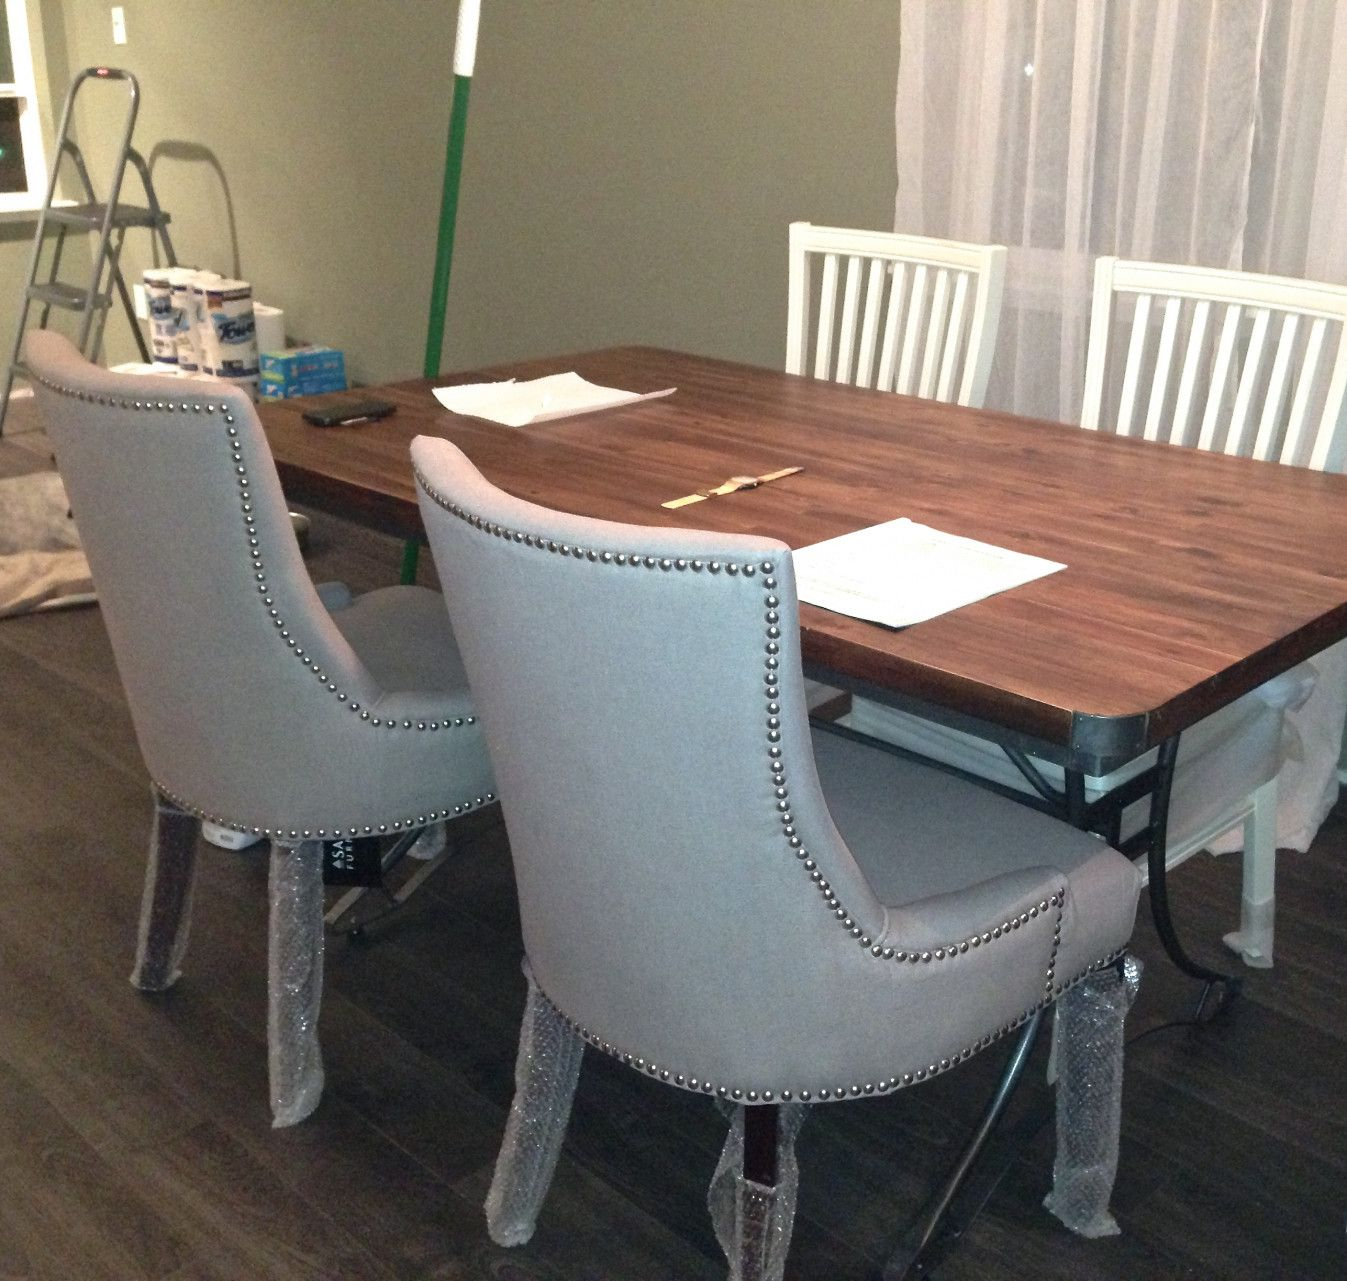 77 dining room chairs pier one modern european furniture check 77 dining room chairs pier one modern european furniture check more at http dzzzfo